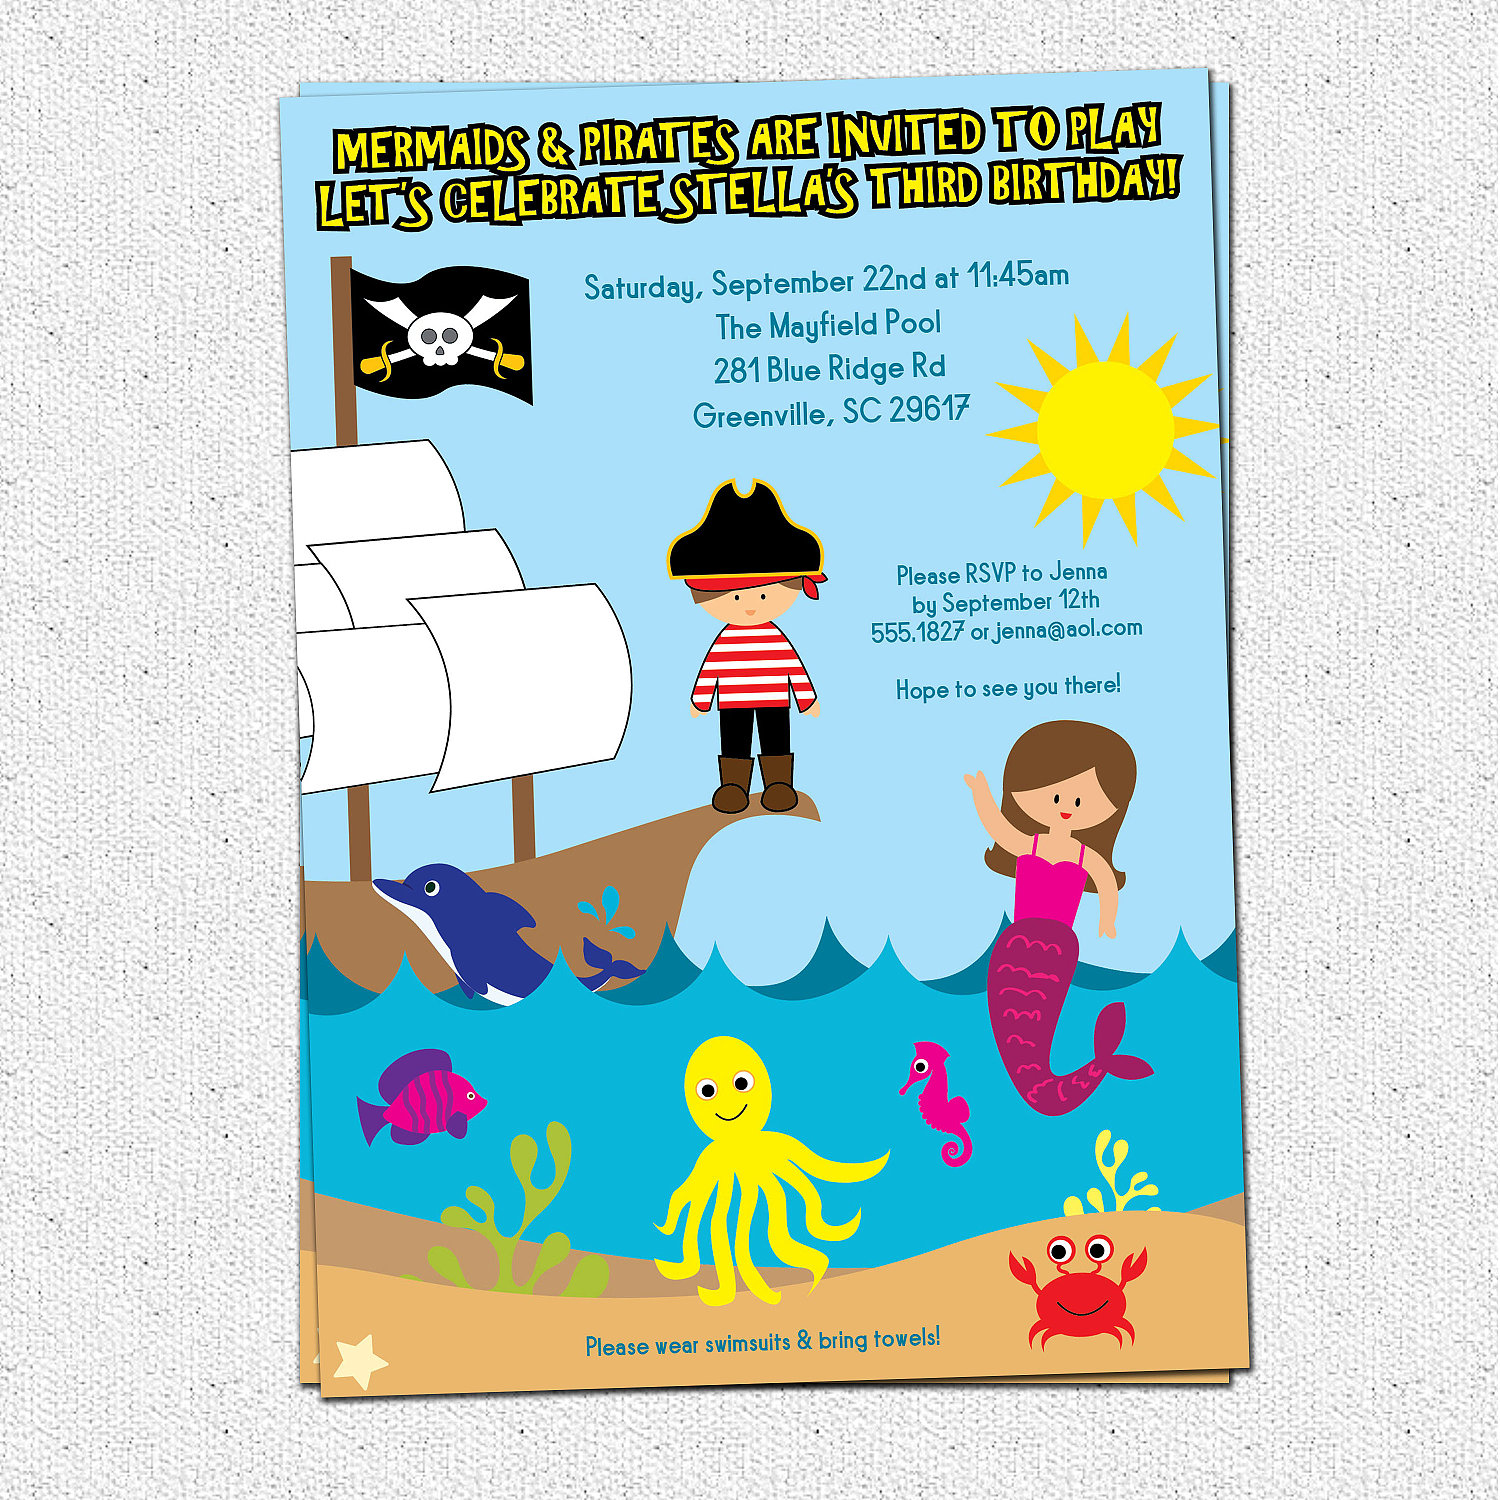 Pirate And Mermaid Birthday Party Invitation Under The Sea Dolphin Ship Printable